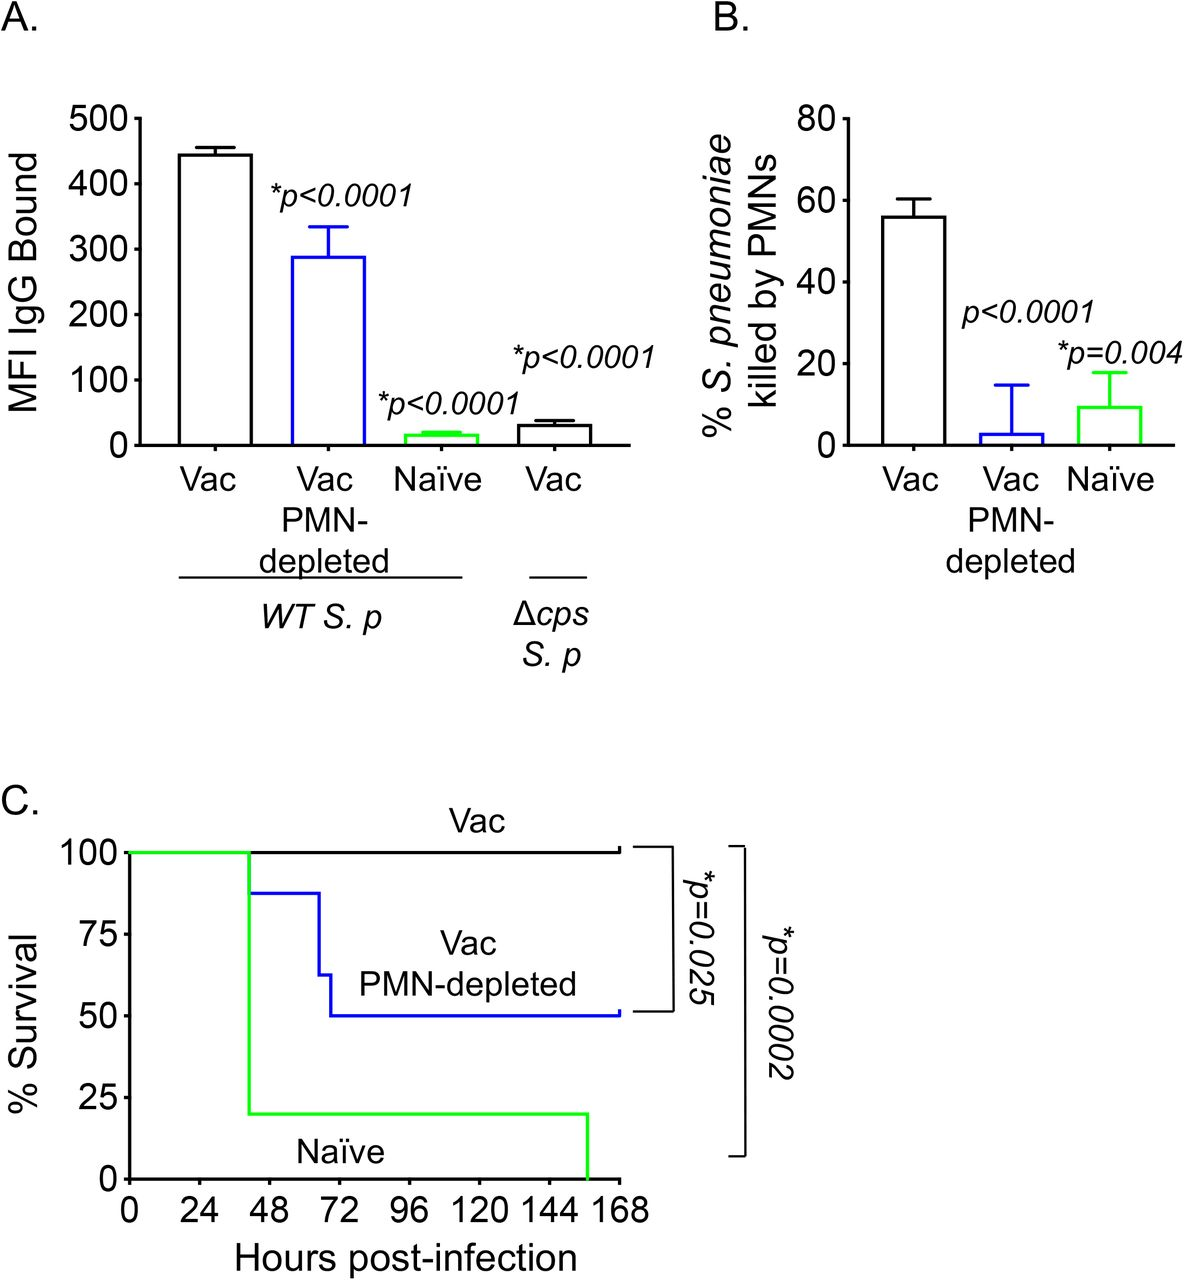 PMNs are required for optimal antibody function following PCV. (A-C) Sera were collected from naïve, Prevnar-13 immunized and PMN depleted immunized mice four weeks post vaccination following the timeline indicated in Fig 1A . (A) Wild type ( WT ) or a capsule deletion mutant ( Δcps ) S. pneumoniae were incubated with the indicated sera for 30 minutes, washed and stained with fluorescently-labeled anti-mouse IgG. The amount (mean fluorescent intensity or MFI) of bound Abs was determined by flow cytometry. Representative data from one of three separate experiments (n=3 biological replicates) are shown where each condition was tested in triplicate (n=3 technical replicates) per experiment. (B) The ability of PMNs isolated from naïve mice to kill pneumococci pre-opsonized with the indicated sera was determined. Percent bacterial killing was determined with respect to a no PMN control. Data shown are pooled from three separate experiments (n=3 biological replicates) where each condition was tested in triplicate (n=3 technical replicates) per experiment. (A-B) Bar graph represent means+/-SD and asterisks indicate significant differences from vaccinated controls as calculated by One-way ANOVA followed by Dunnet's test. (C) Naïve C57BL/6 female mice were injected i.p with 200μl of pooled serum from the indicated mice then challenged i.t. 1 hour later with 5×10 5 CFU S. pneumoniae TIGR4. Survival was assessed over time. *, denotes significance by the log-Rank (Mantel-Cox) test. Data were pooled from 8 mice/group from two separate experiments.